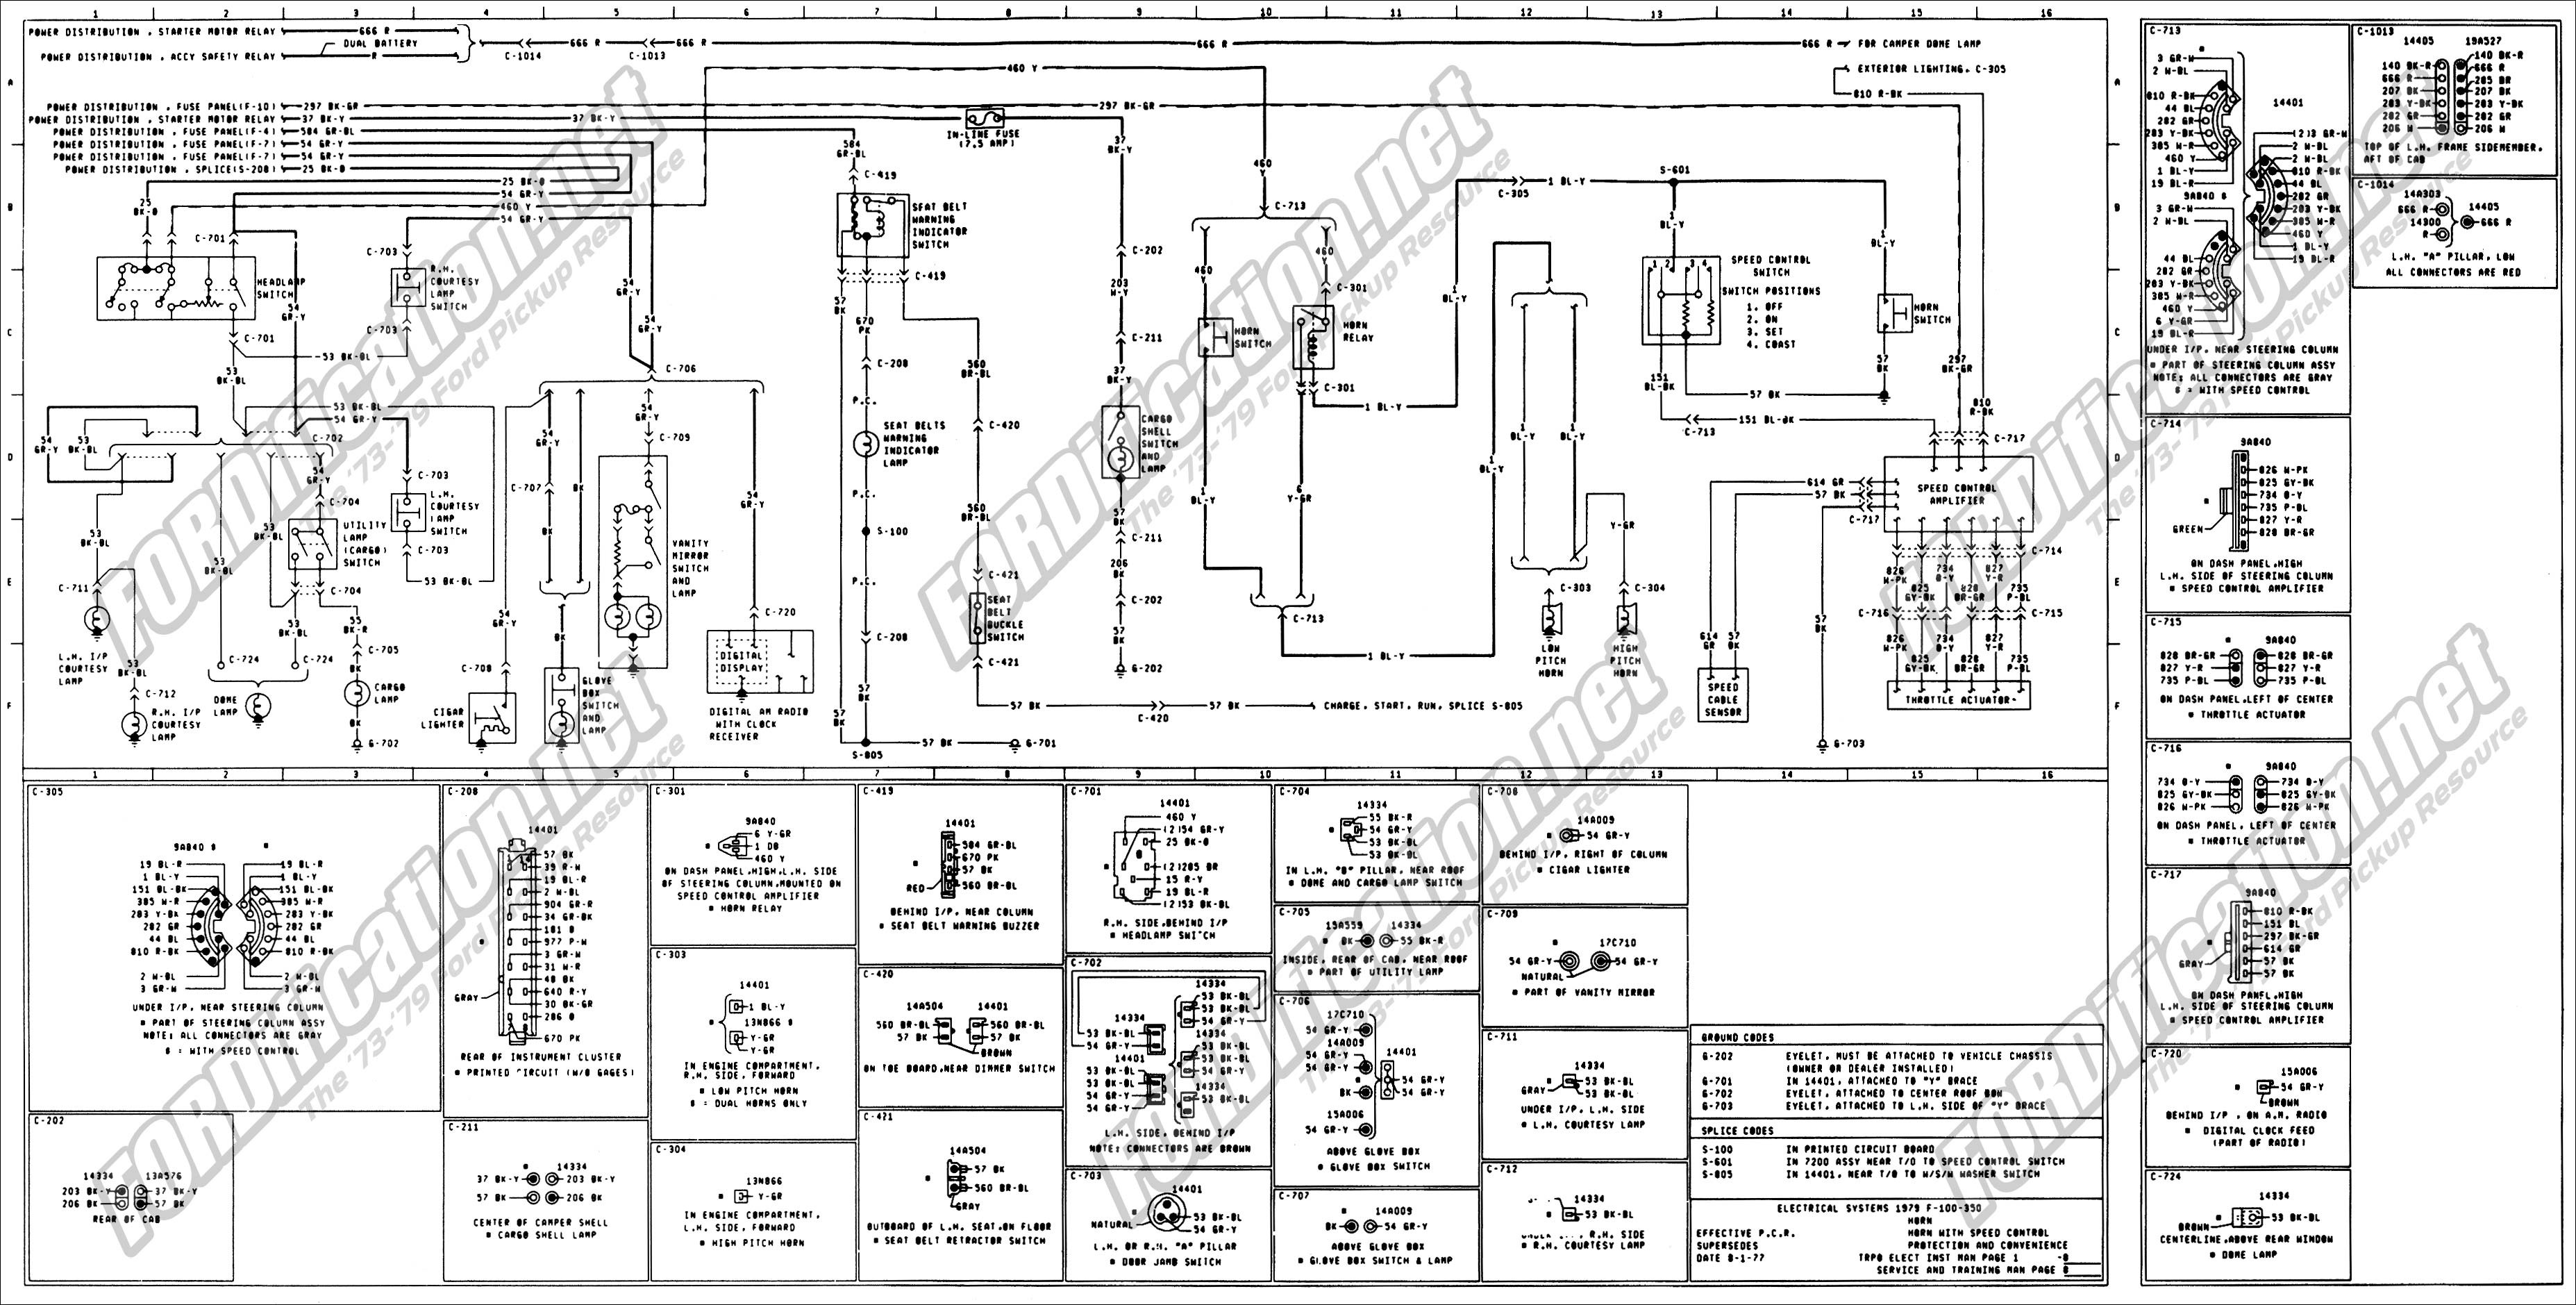 Taco Zone Valves Wiring Diagram Great 2003 ford F350 Wiring Diagram 62 About Remodel Taco Zone Valve Of Taco Zone Valves Wiring Diagram